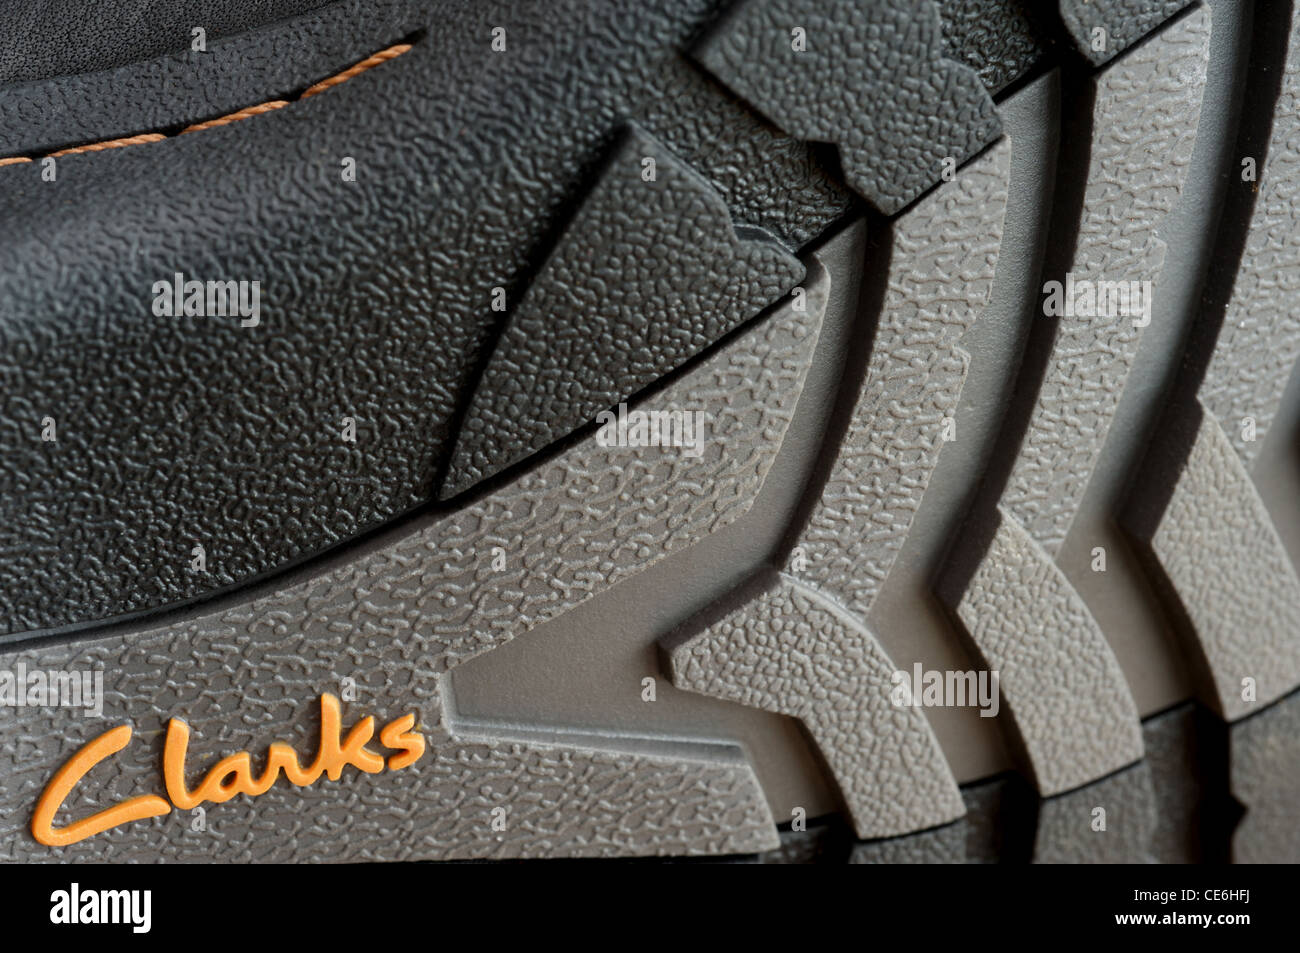 Clarks Stock amp; Shoes Fotos Alamy Immagini cHqAvwP